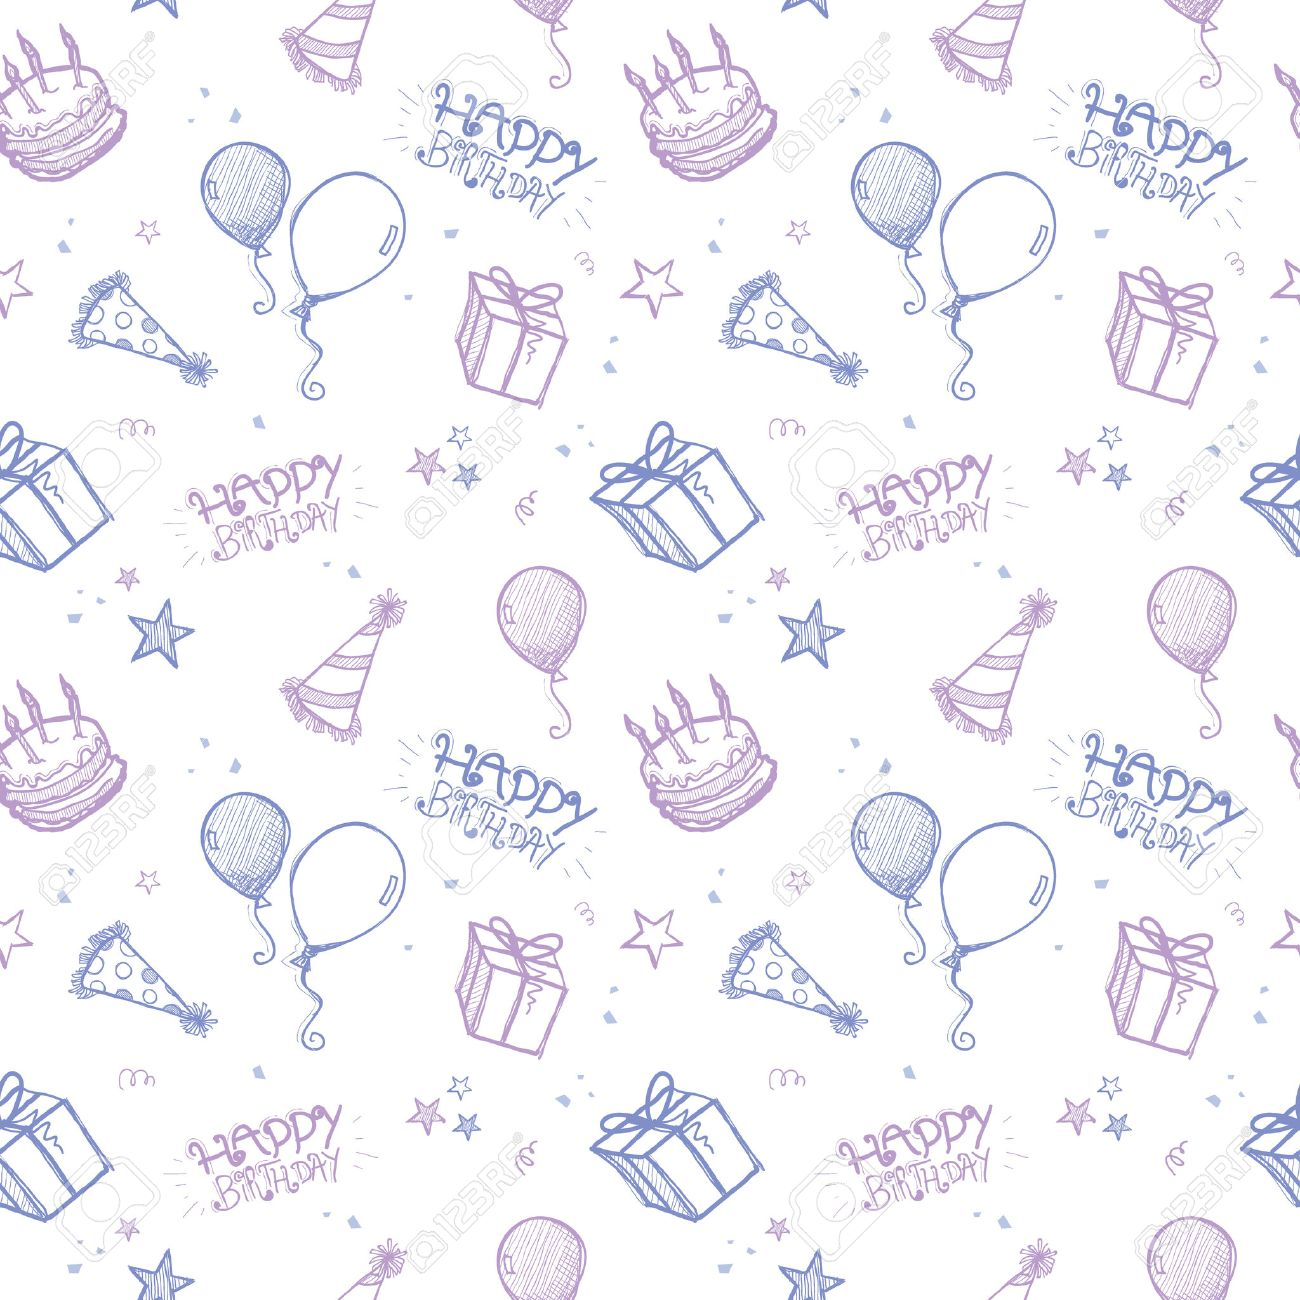 A Seamless Hand Drawn Vector Background Birthday Theme Royalty